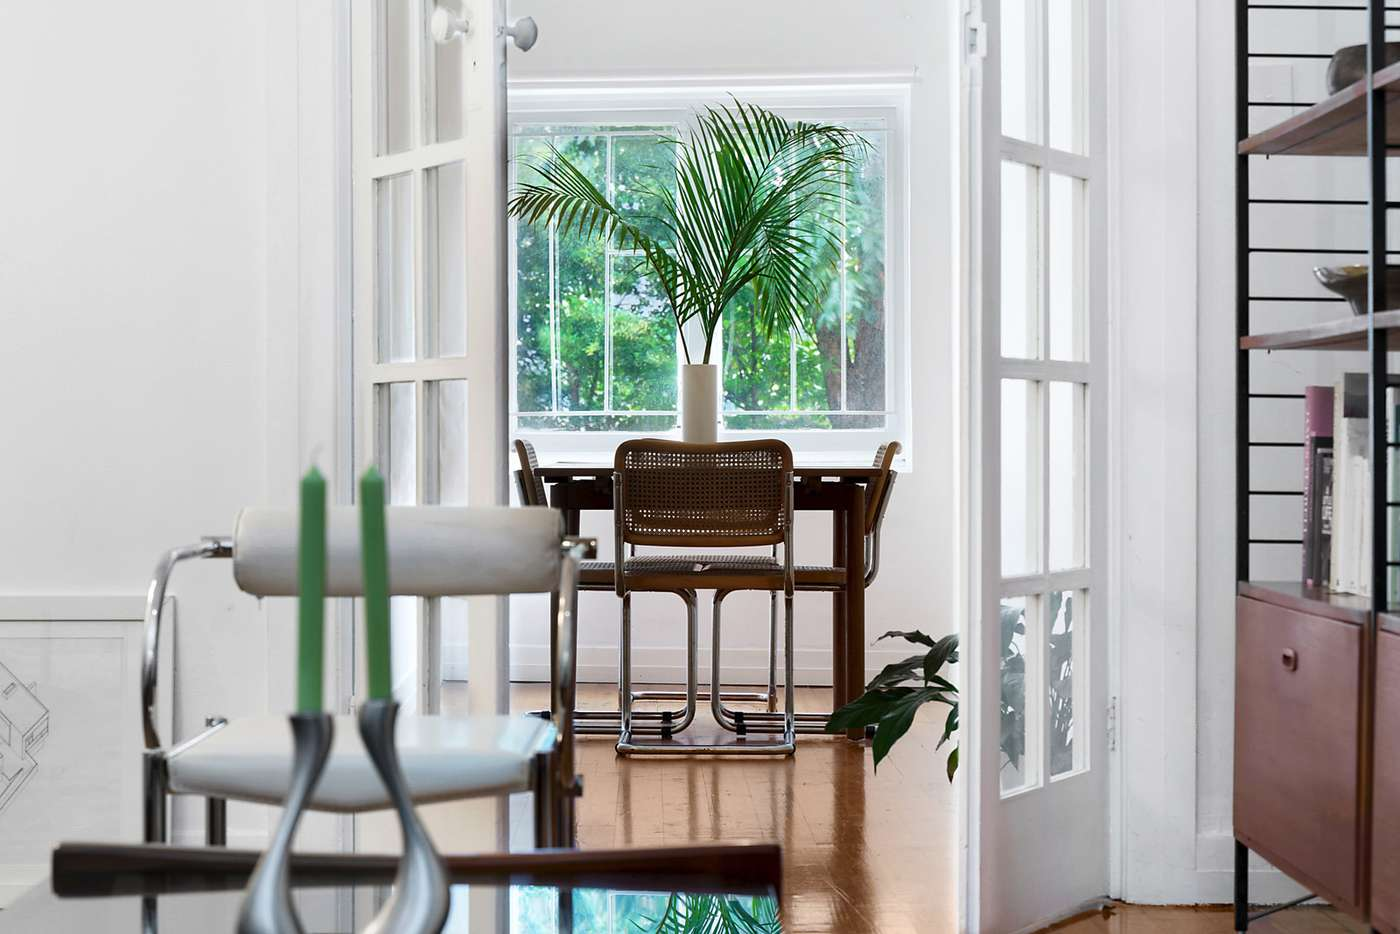 Main view of Homely apartment listing, 1/2 Clapton Place, Darlinghurst NSW 2010